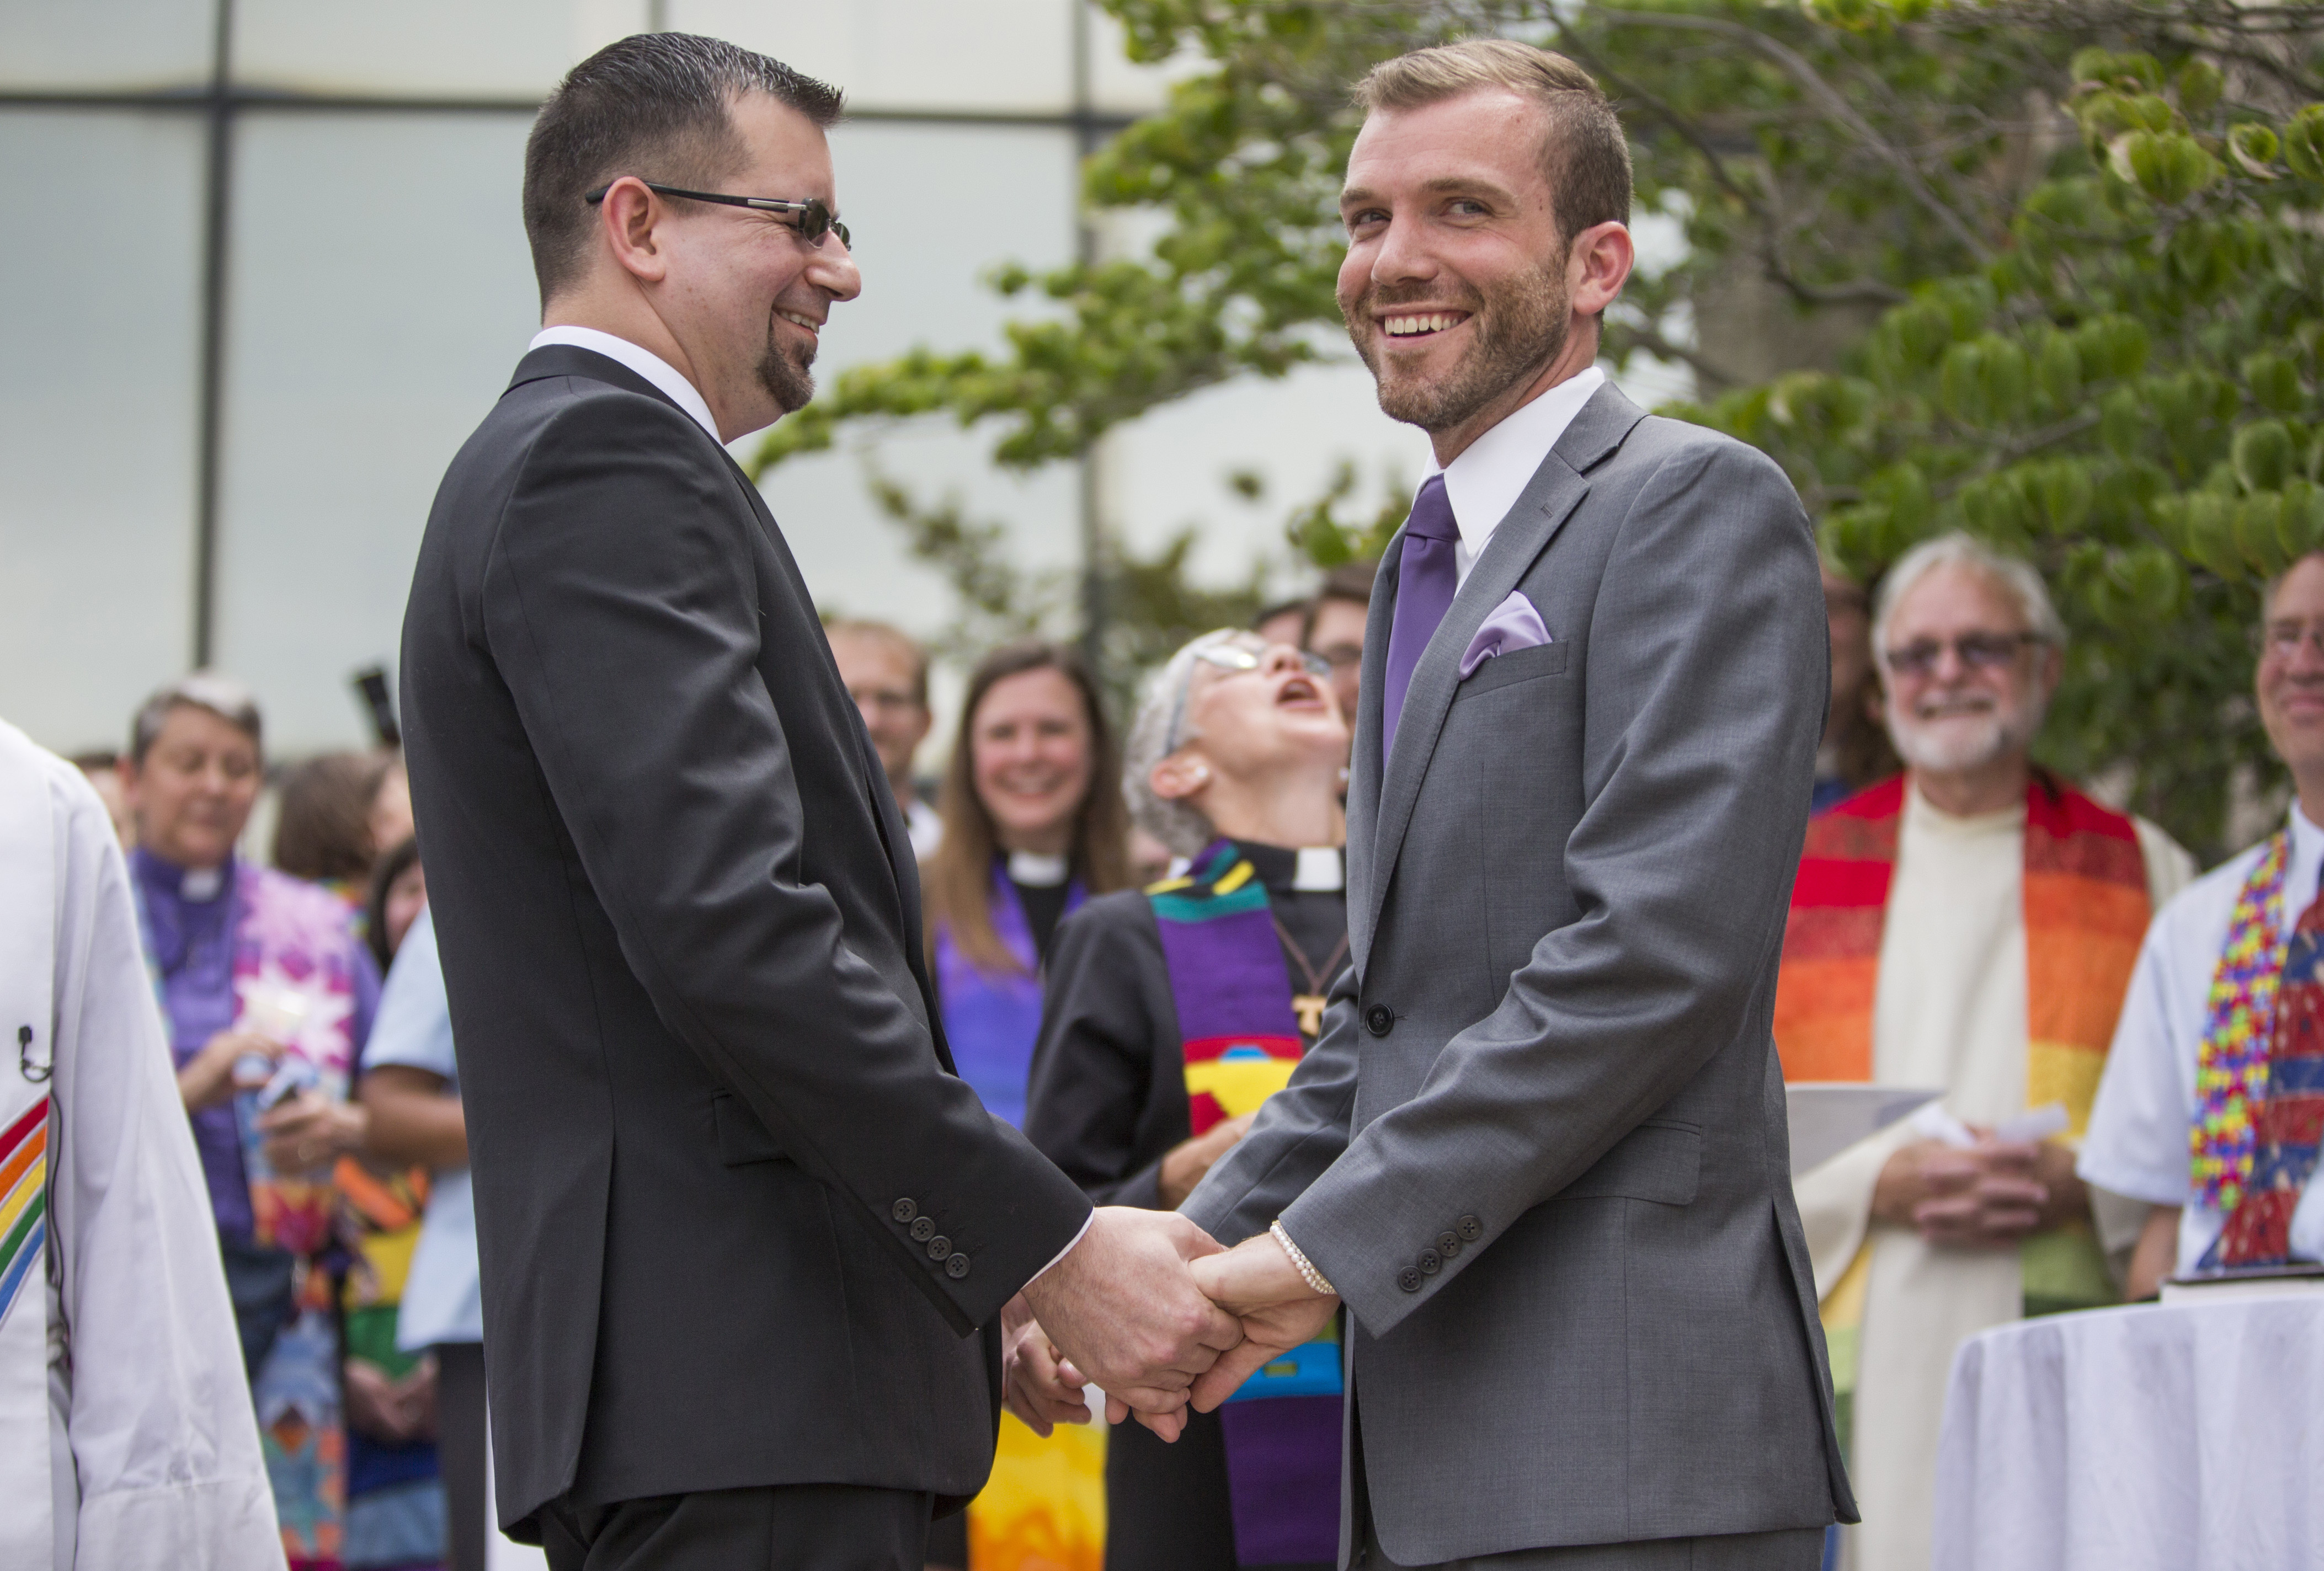 The Rev. Benjamin David Hutchison, right, marries long-time partner Monty Hutchison on Friday, July 17, 2015, outside the Cass County Courthouse. Photo by Robert Franklin, courtesy of South Bend Tribune